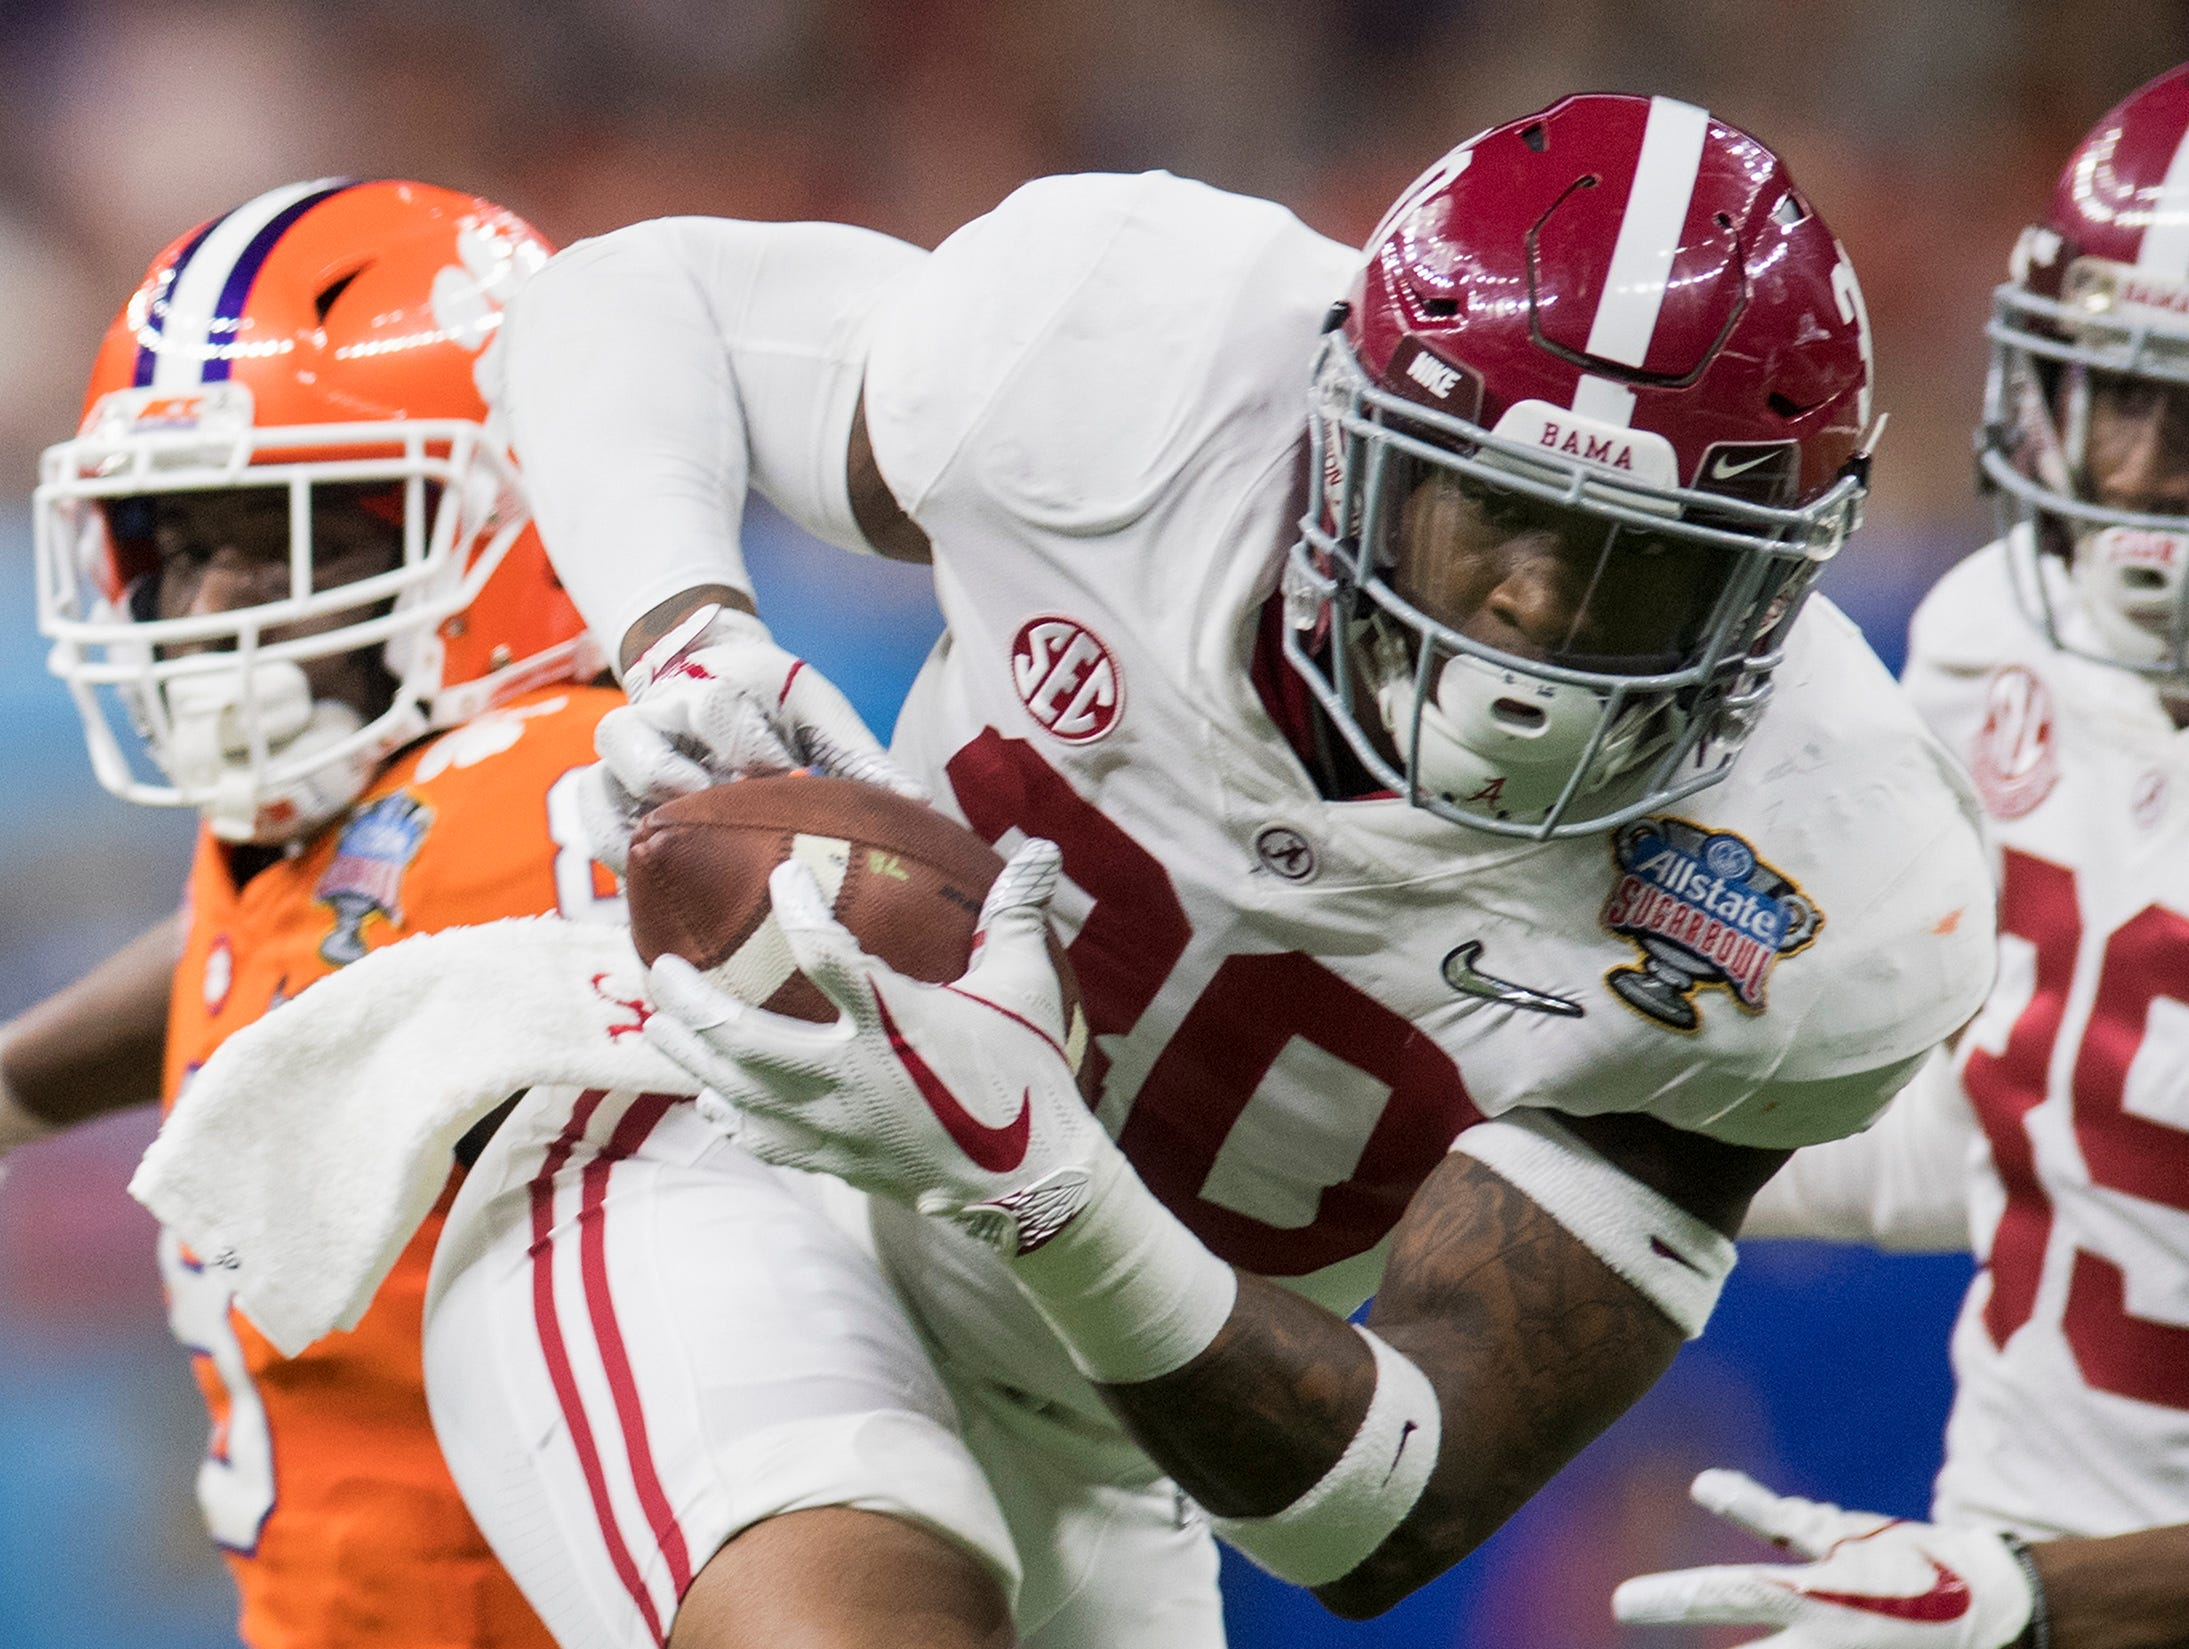 Alabama linebacker Mack Wilson (30) intercepts a pass from Clemson and returnd it for a touchdown in the Sugar Bowl at the Superdome in New Orleans, La. on Monday January 1, 2018.